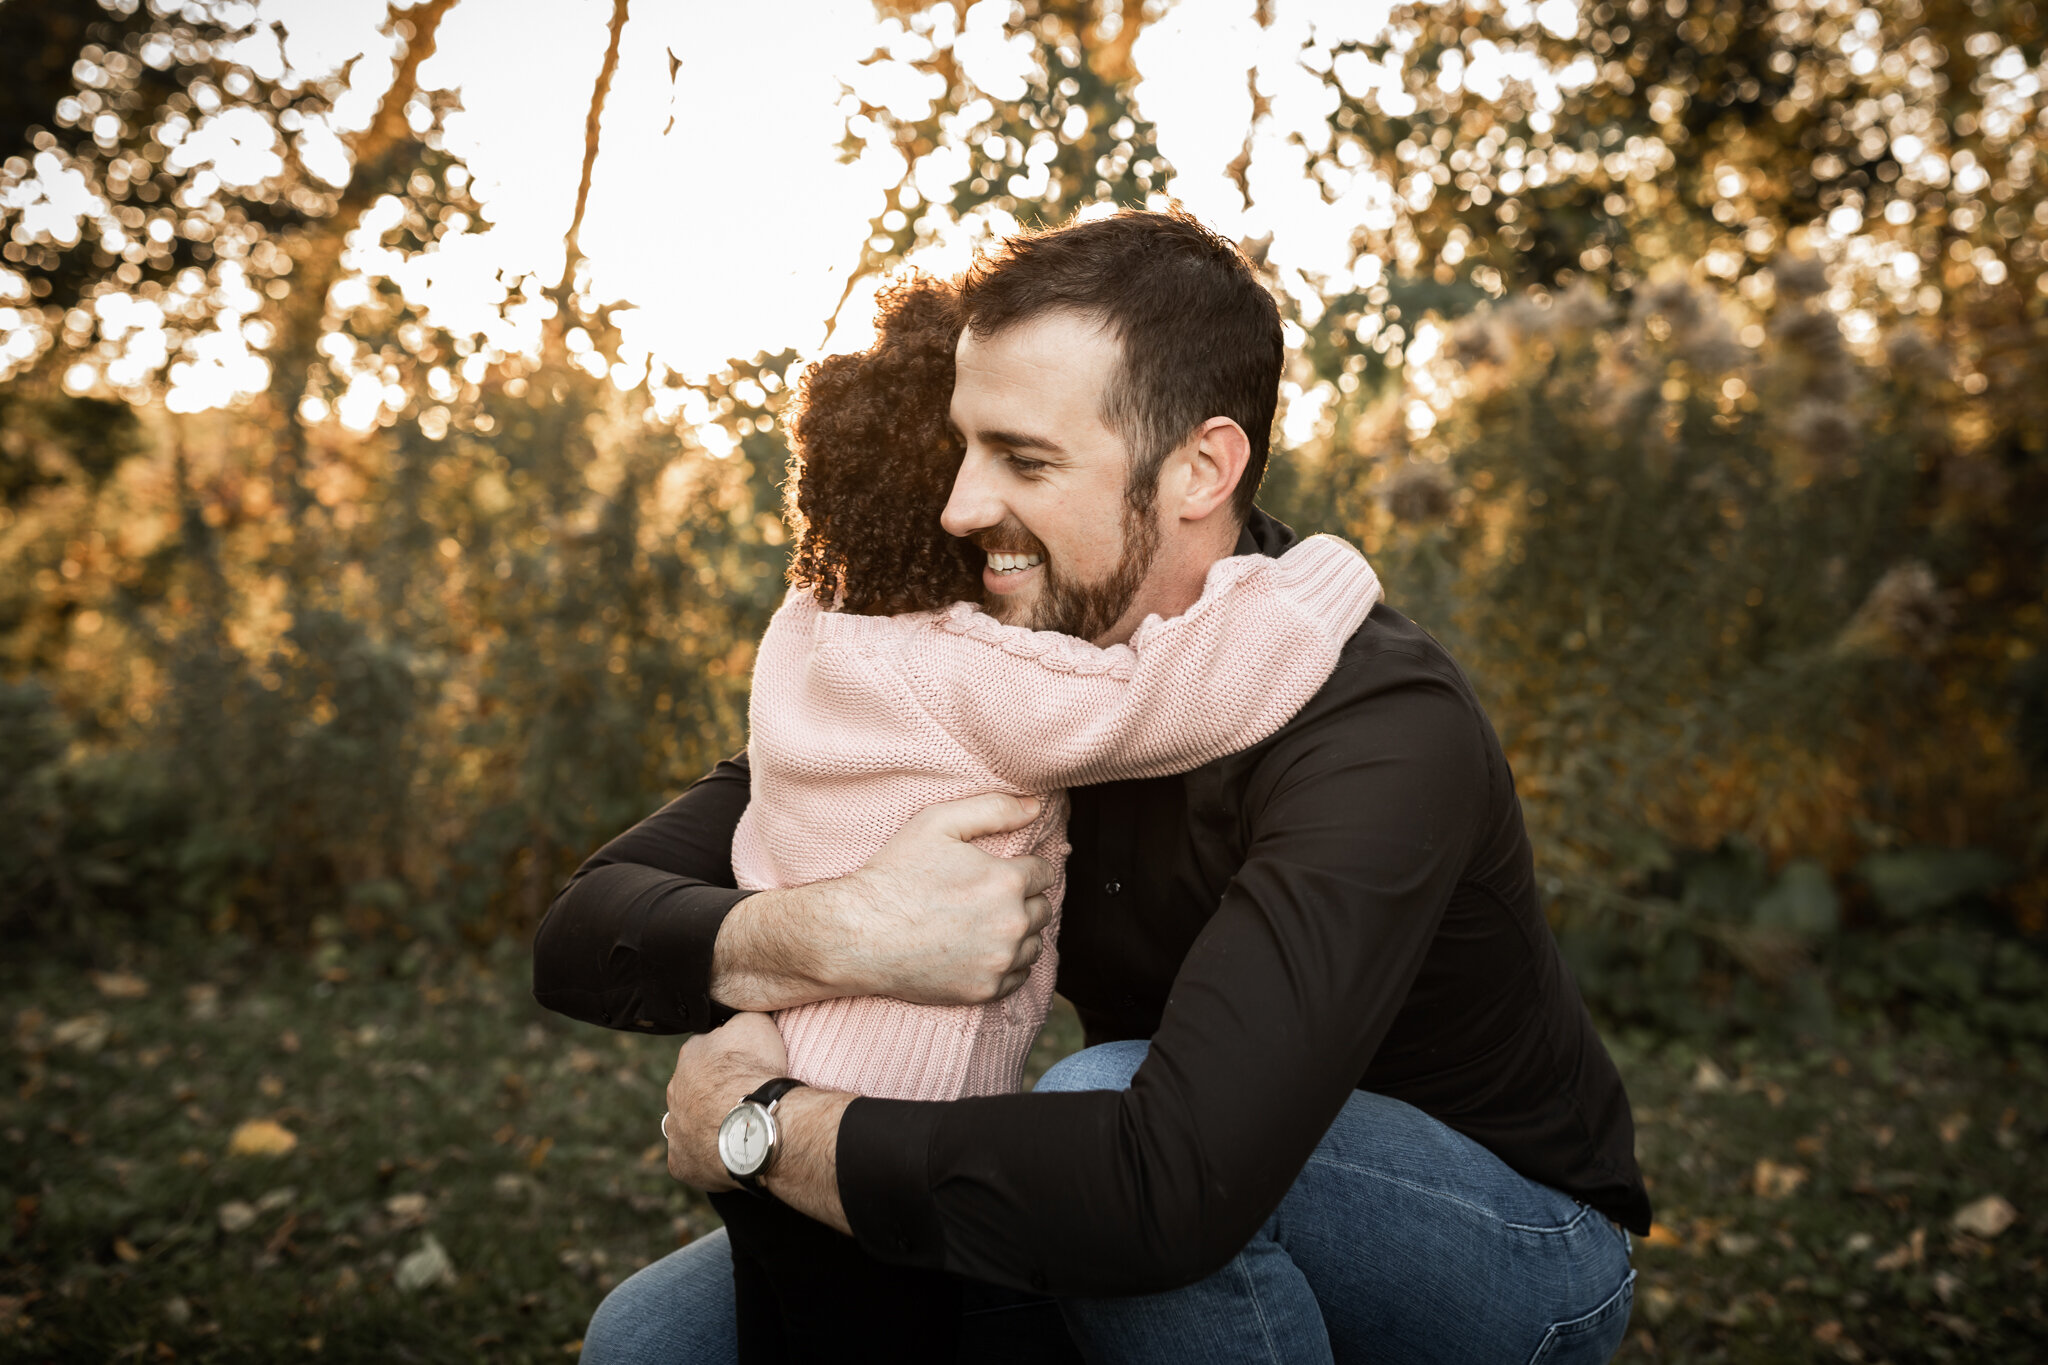 Nothing better than a hug from dad!